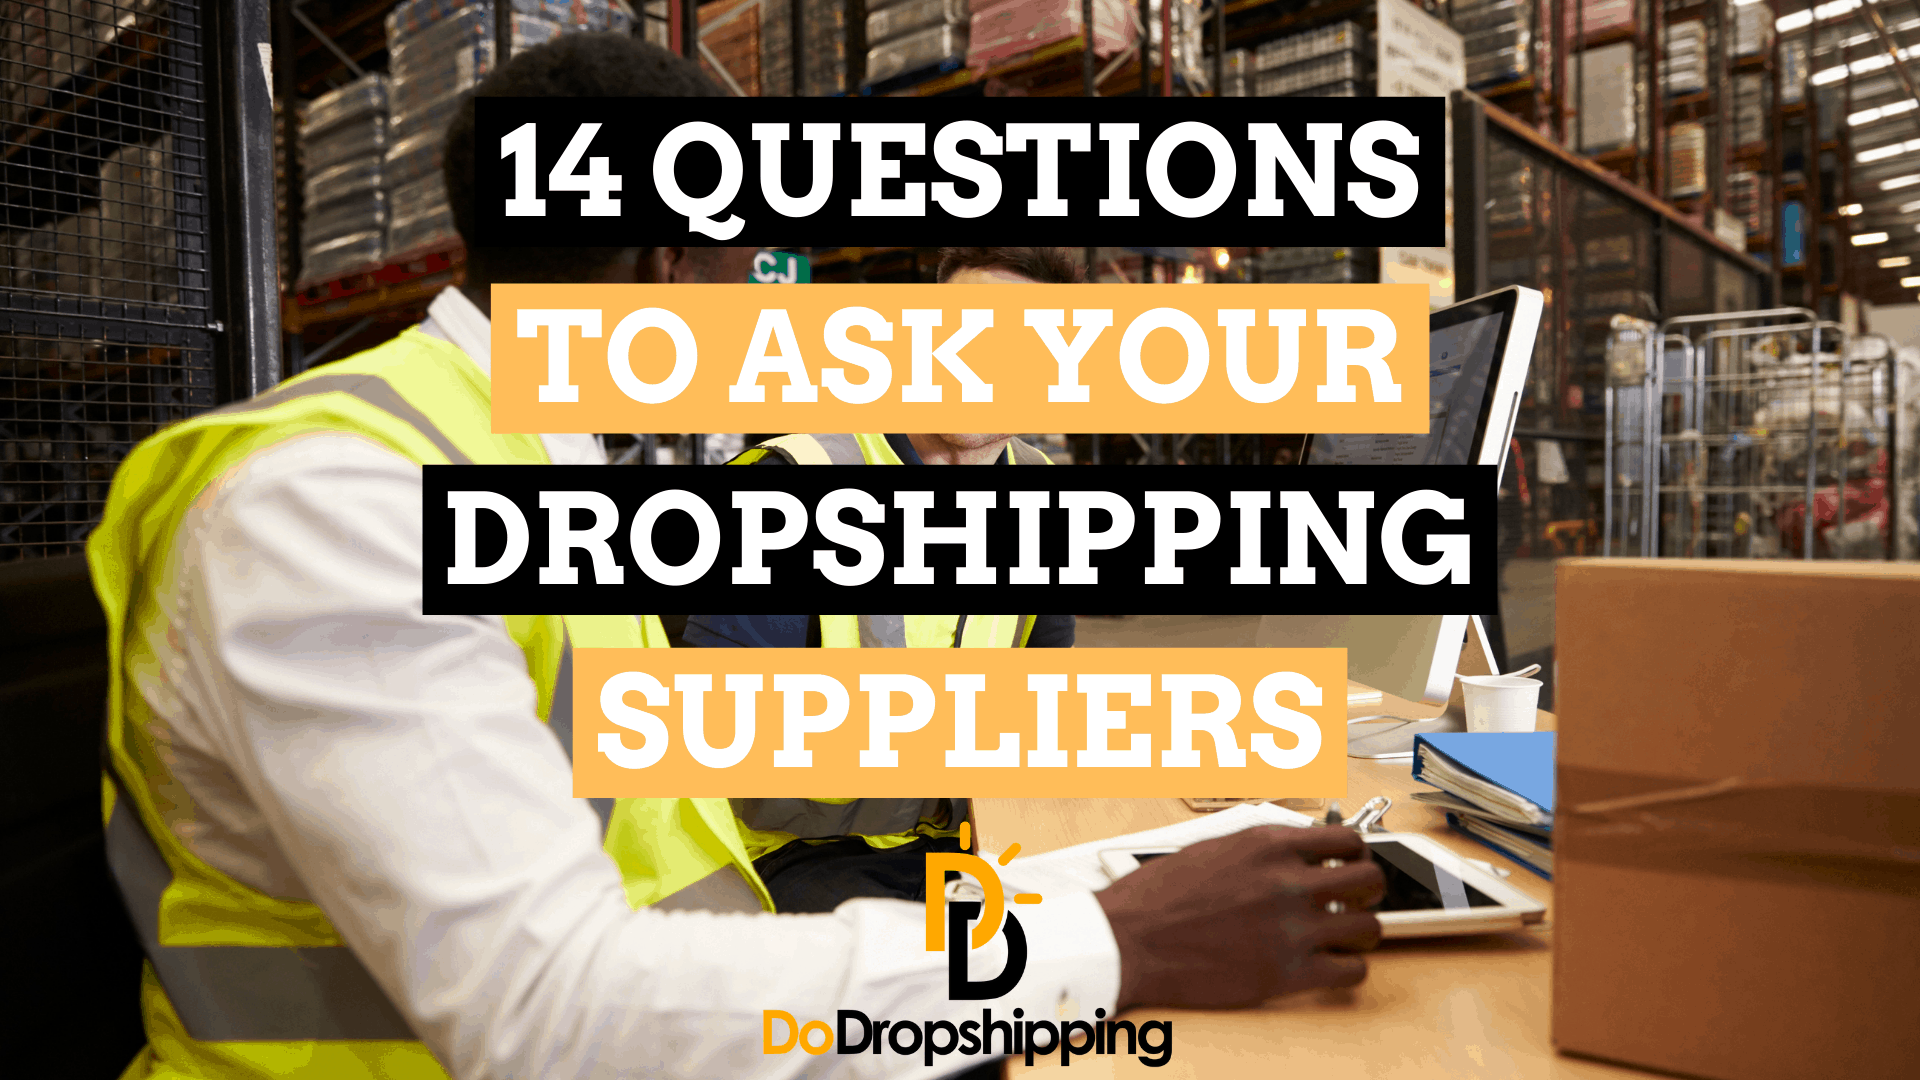 14 Questions to Help You Find Awesome Dropshipping Suppliers